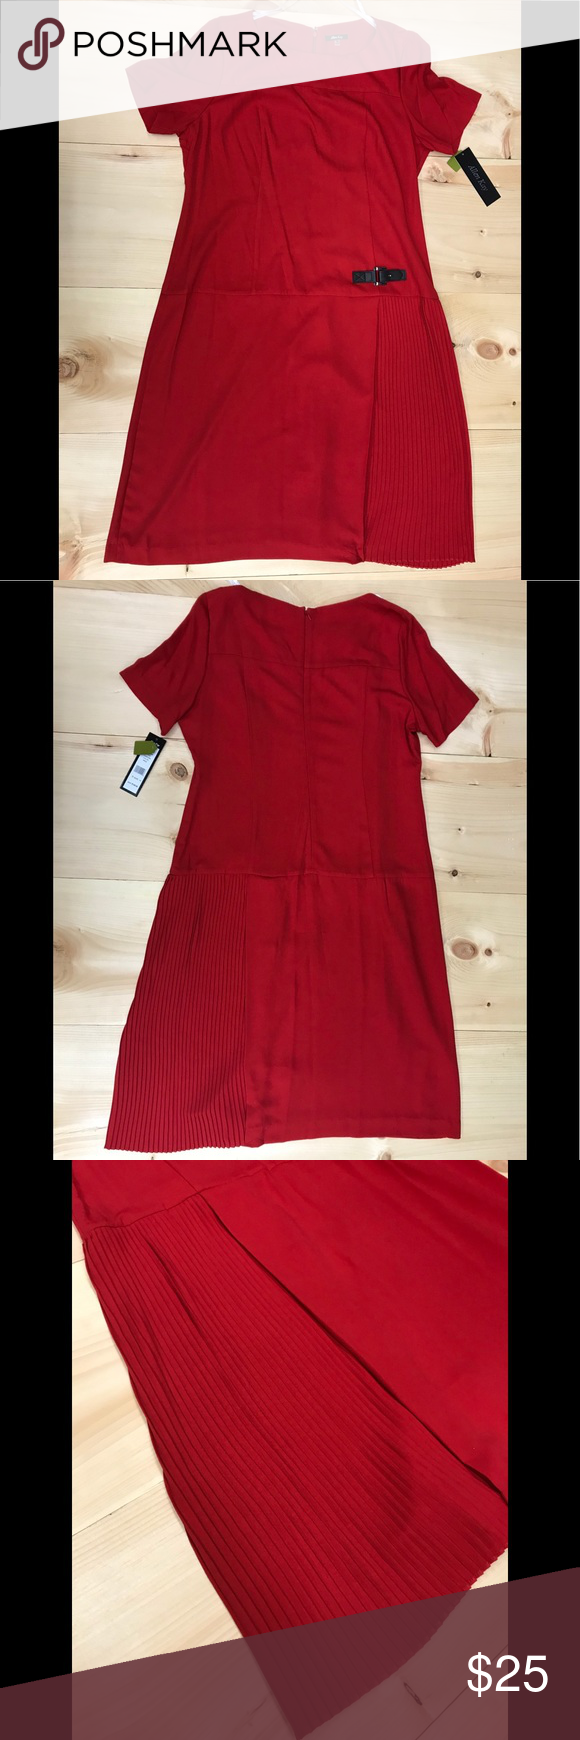 Allen kay womenus short sleeve dress buckled red boutique my